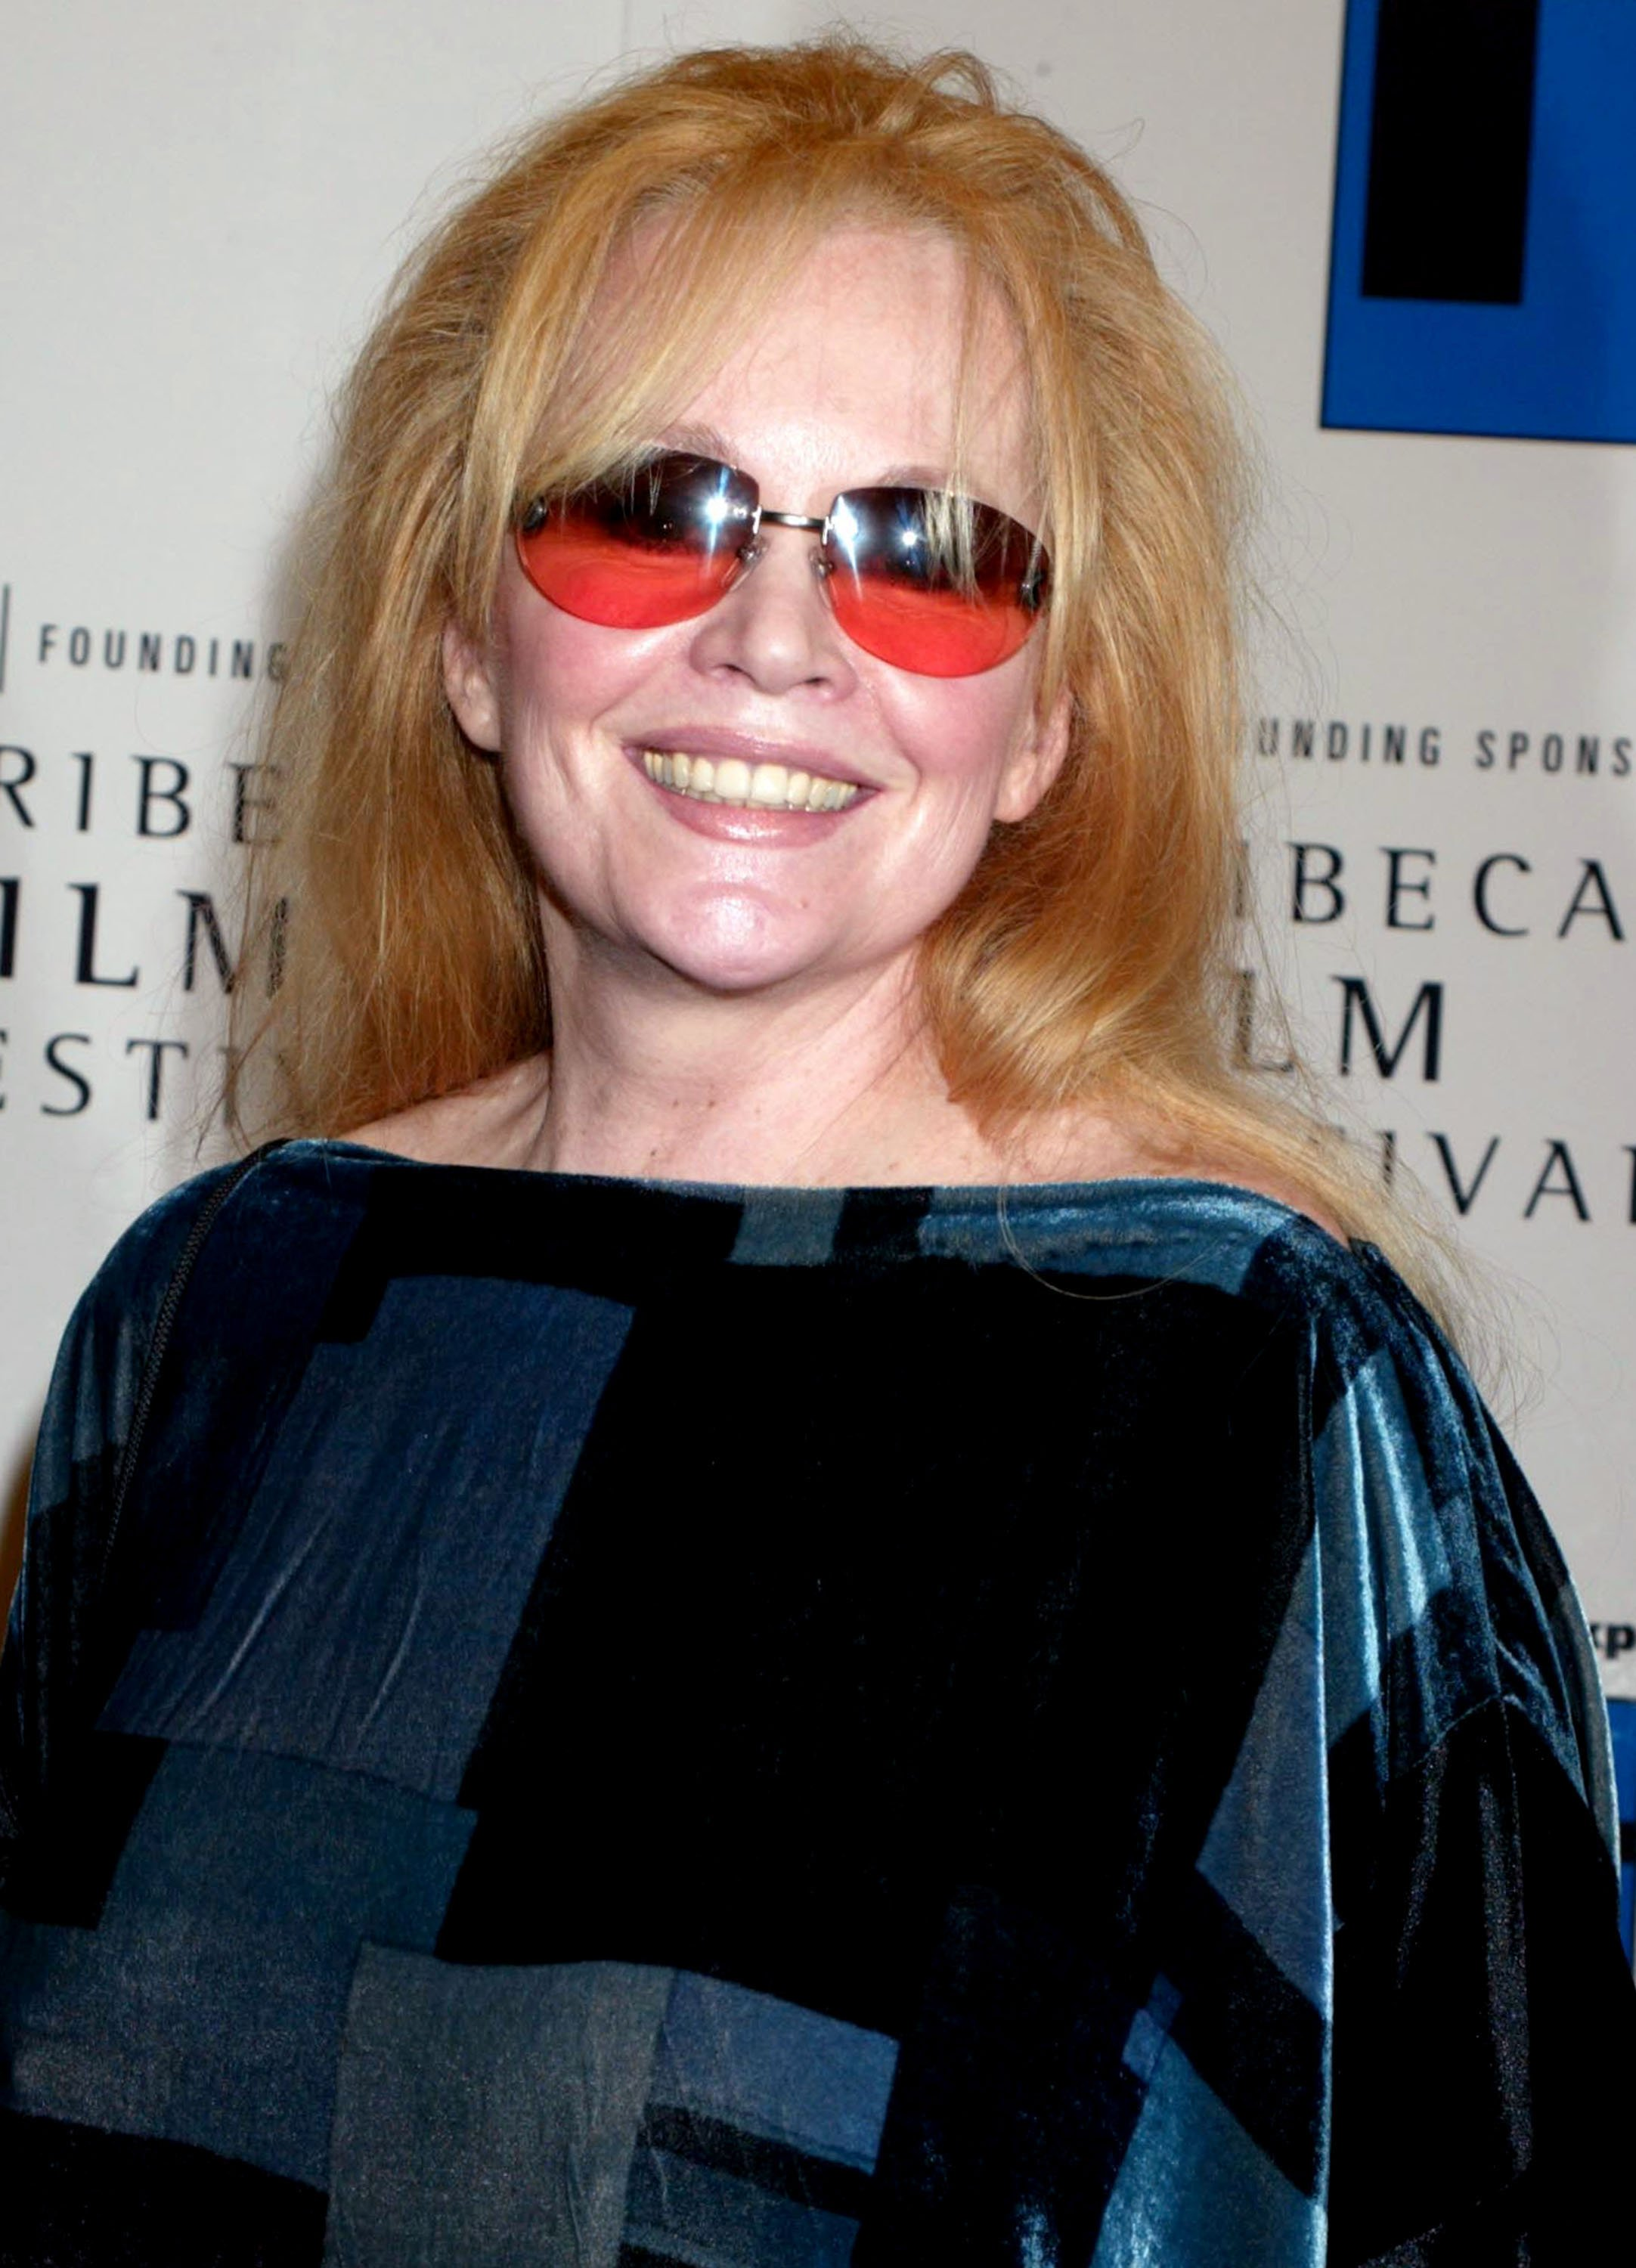 Tuesday Weld at the 2003 Tribeca Film Festival, New York. | Source: Getty Images